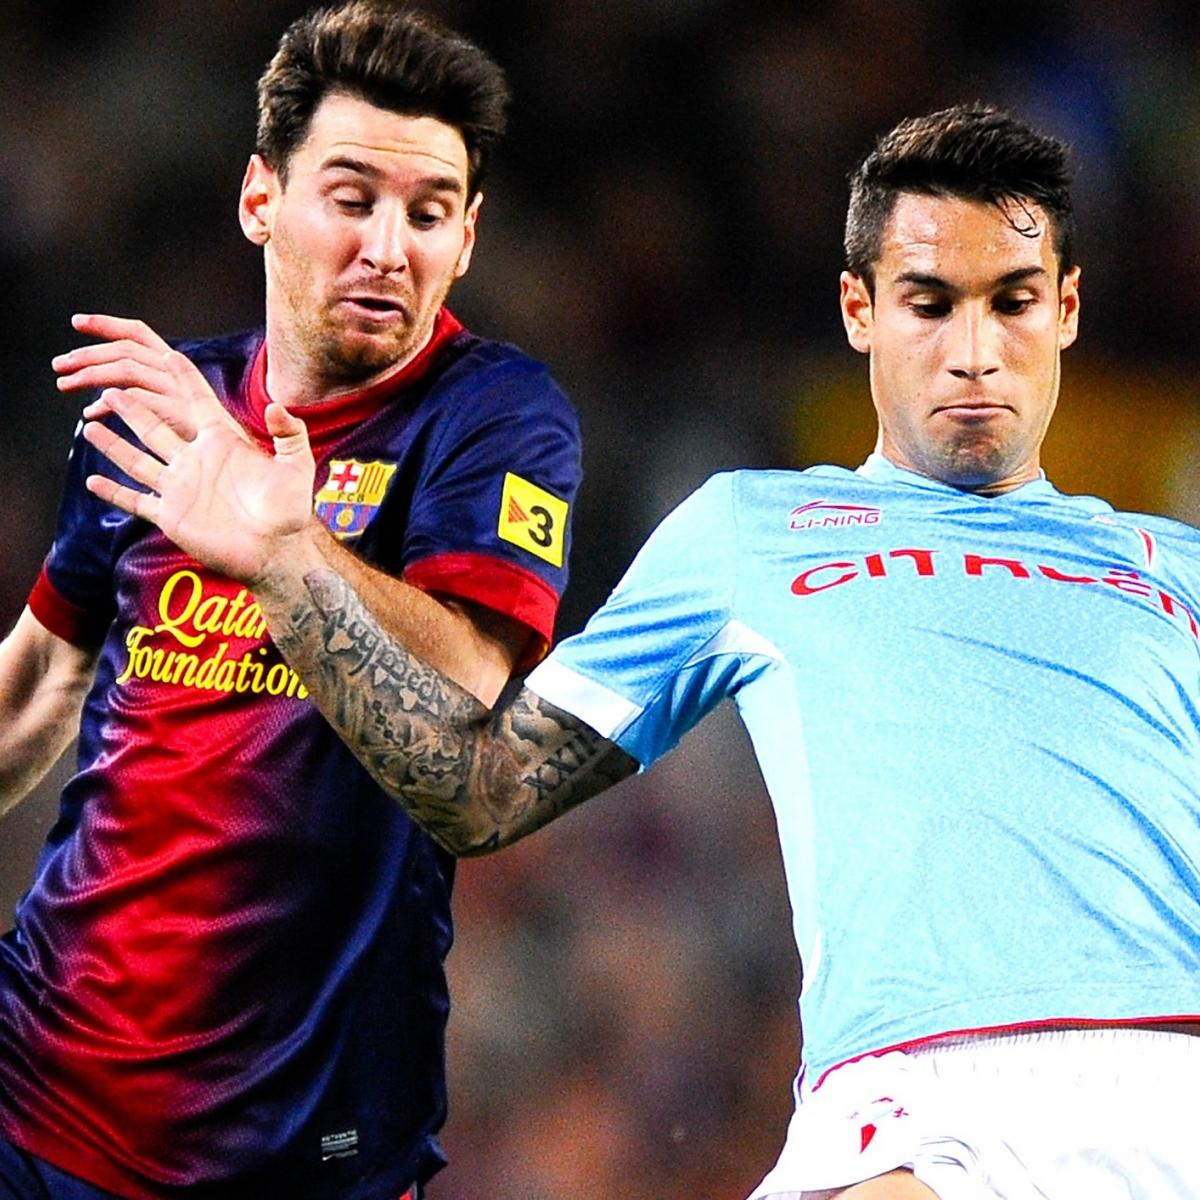 Celta Vigo Vs Barcelona Direct: Celta Vigo Vs. Barcelona: La Liga Live Score, Highlights